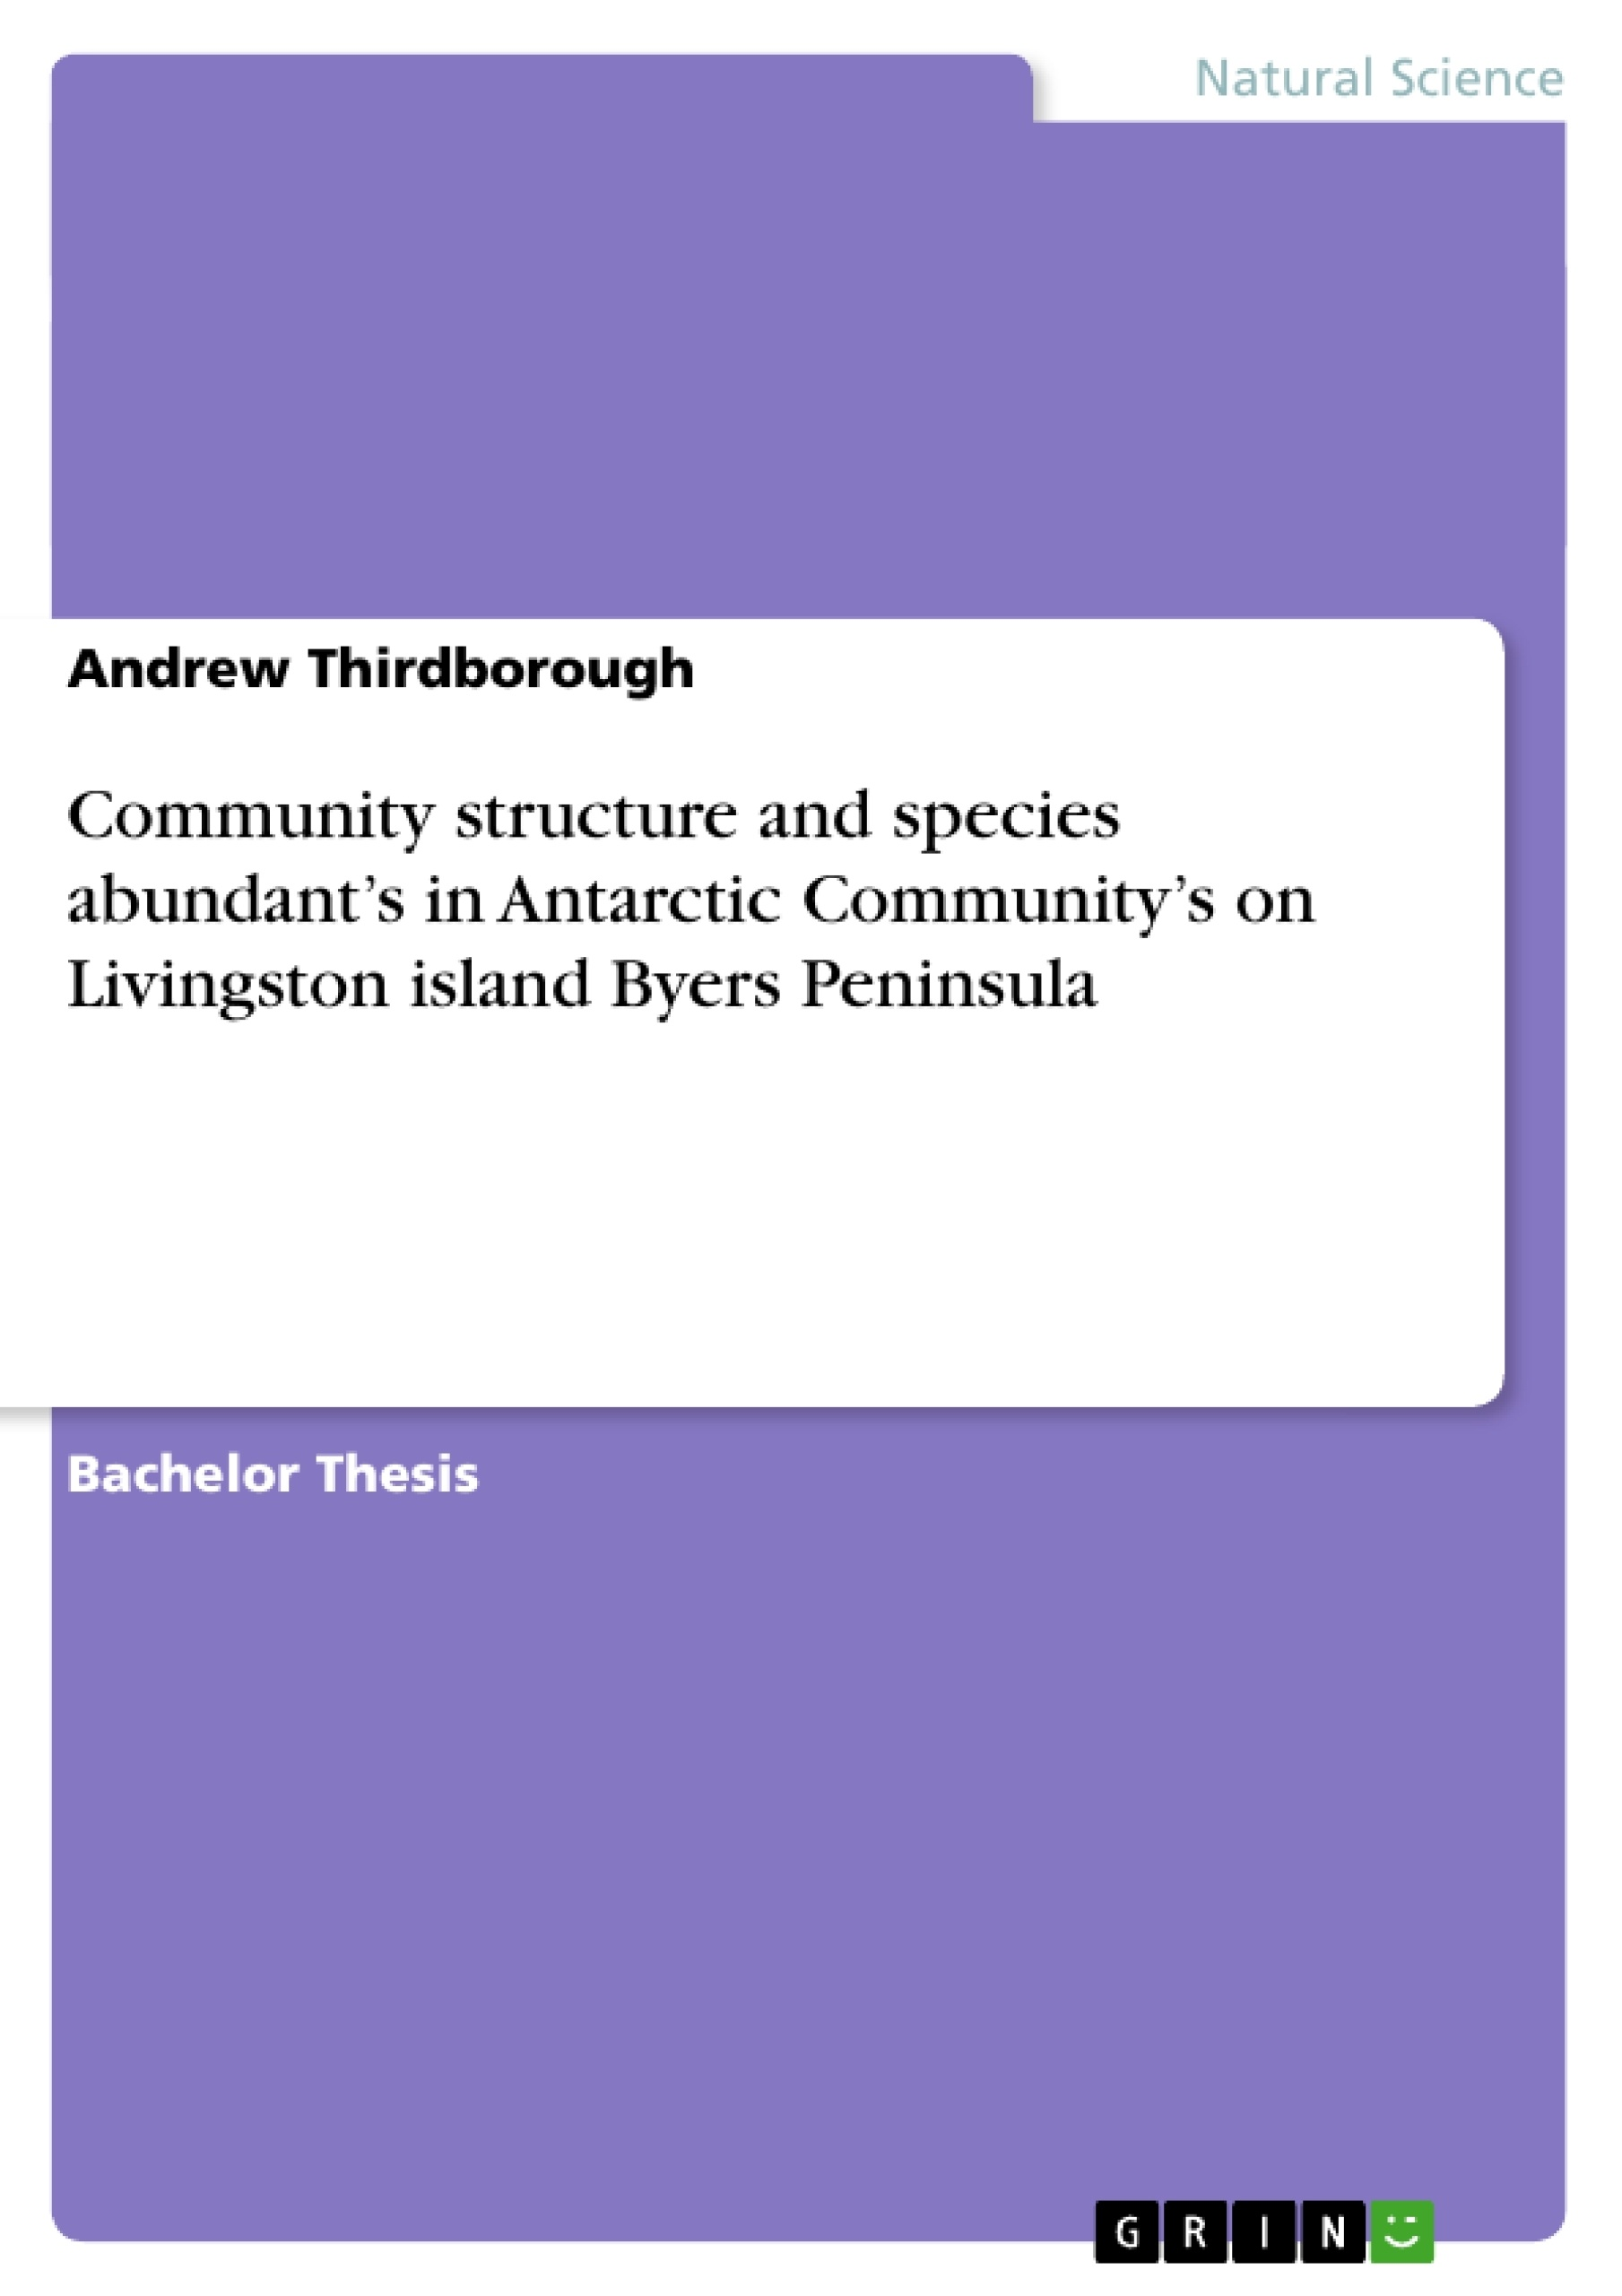 Title: Community structure and species abundant's in Antarctic Community's on Livingston island Byers Peninsula